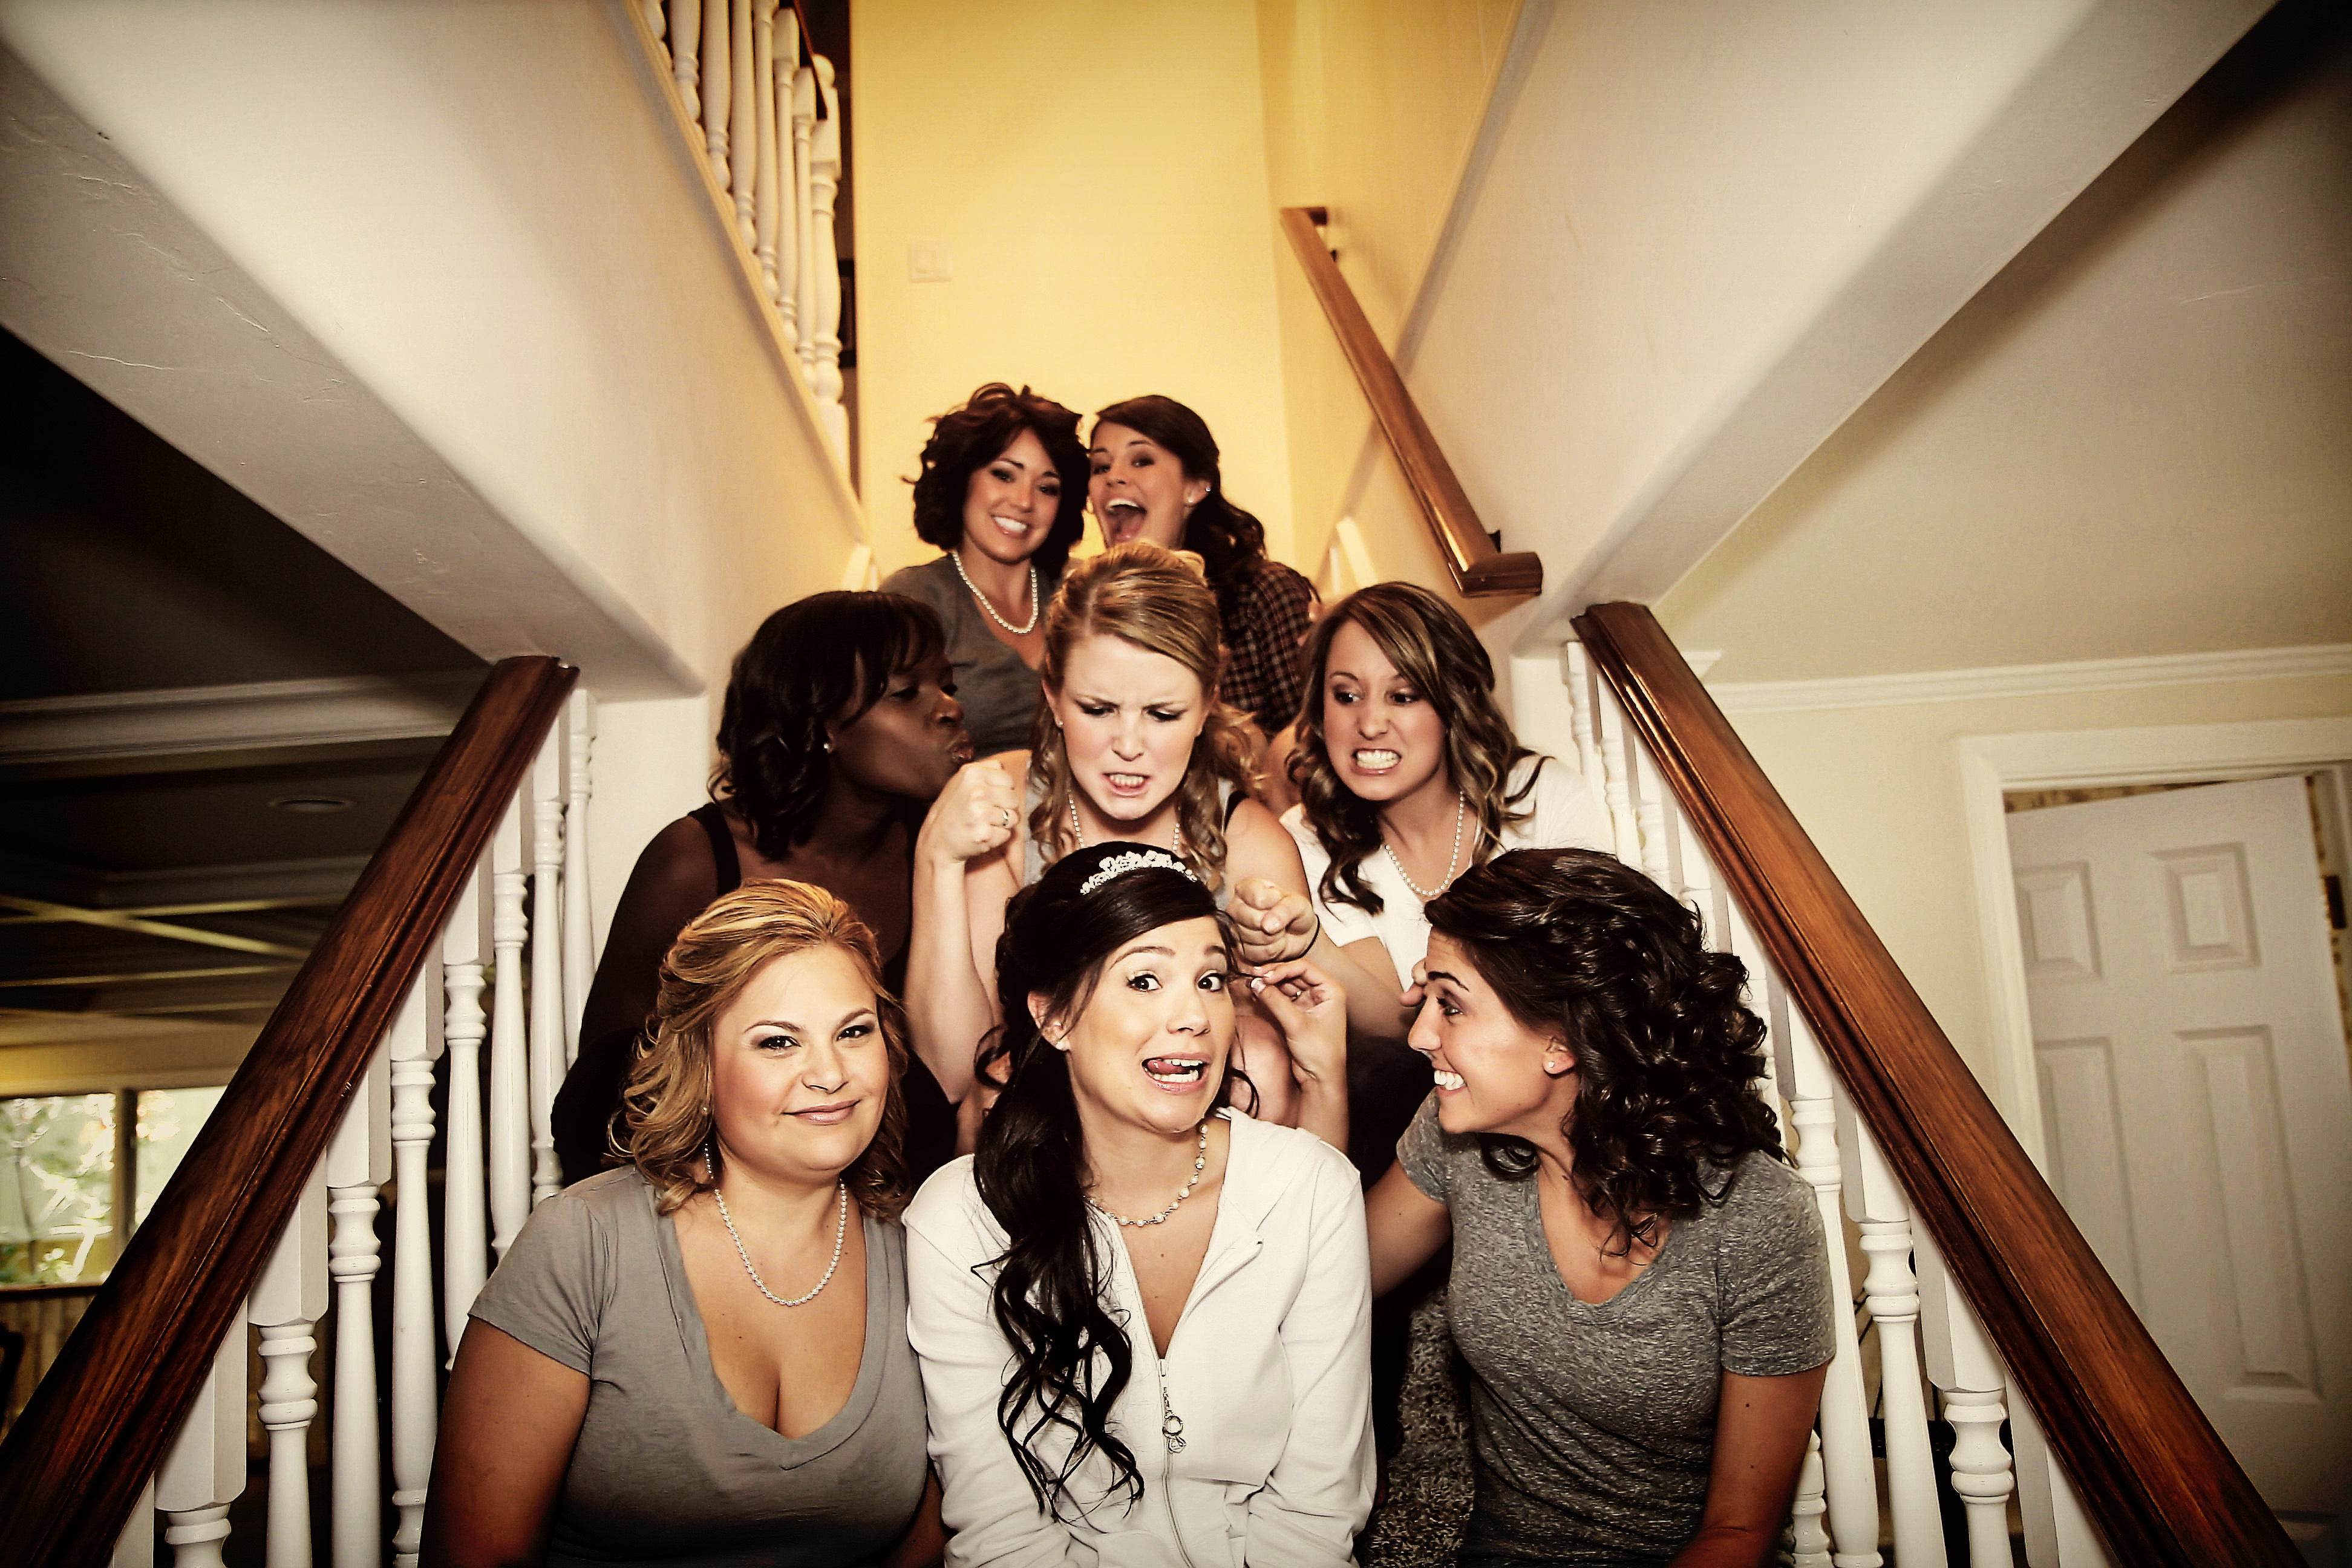 Beauty, Bridesmaids, Bridesmaids Dresses, Fashion, Hair, Fun, Goofy, Julie wilson, Groupshot